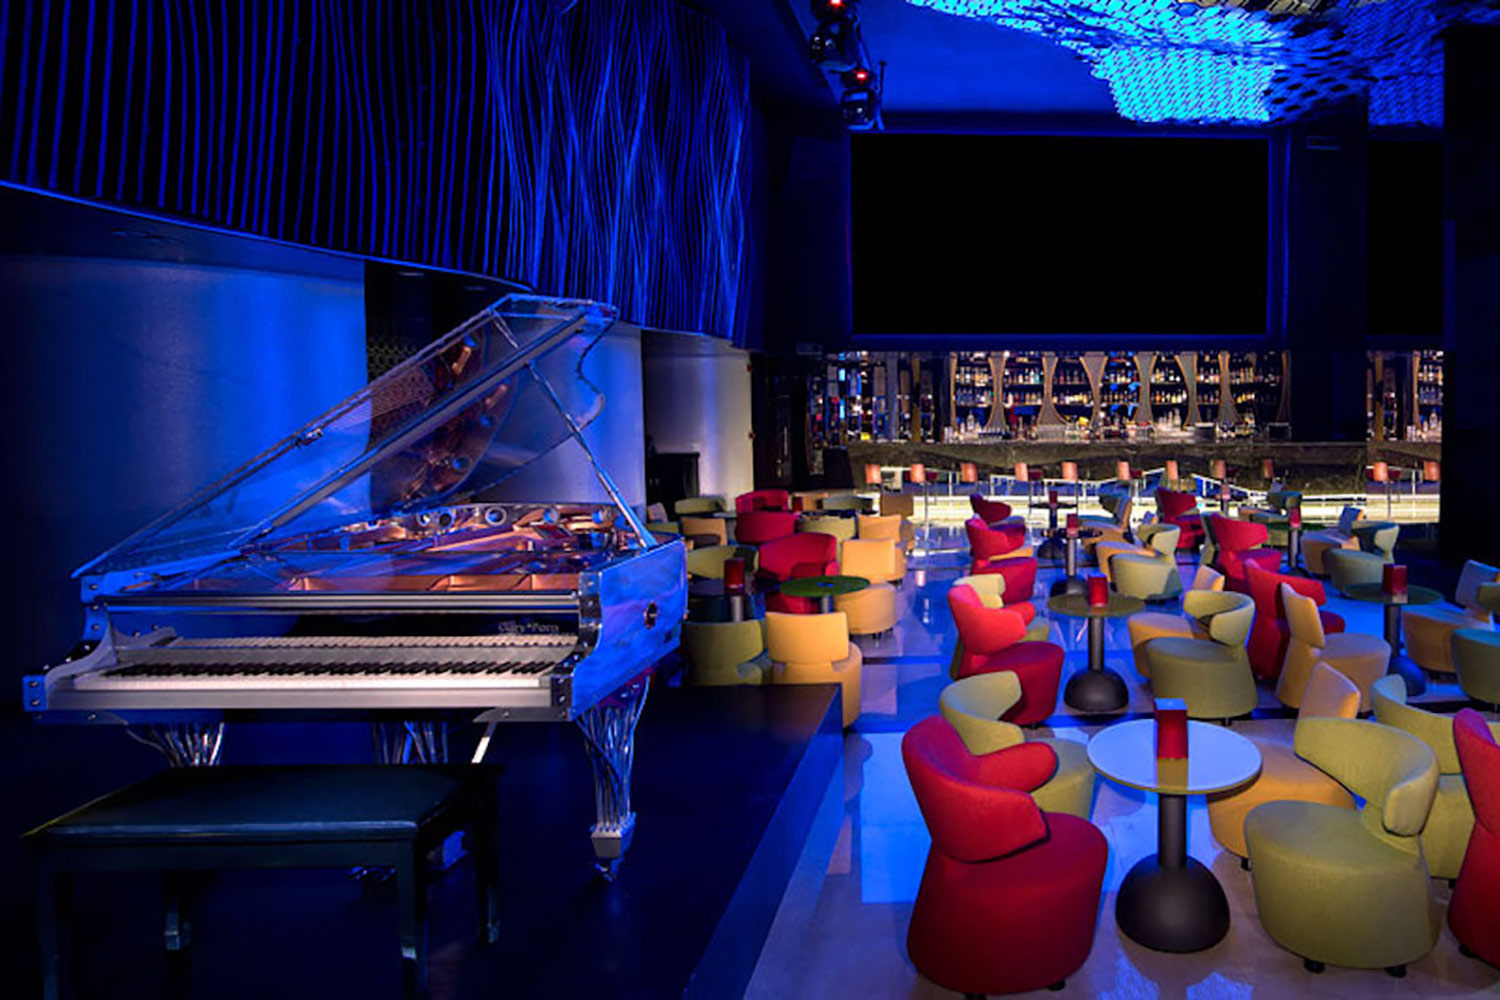 La Cigale, Doha's newest luxury hotel. WSDG (Walters-Storyk Design Group) performed a full acoustic makeover. Madison Piano Bar